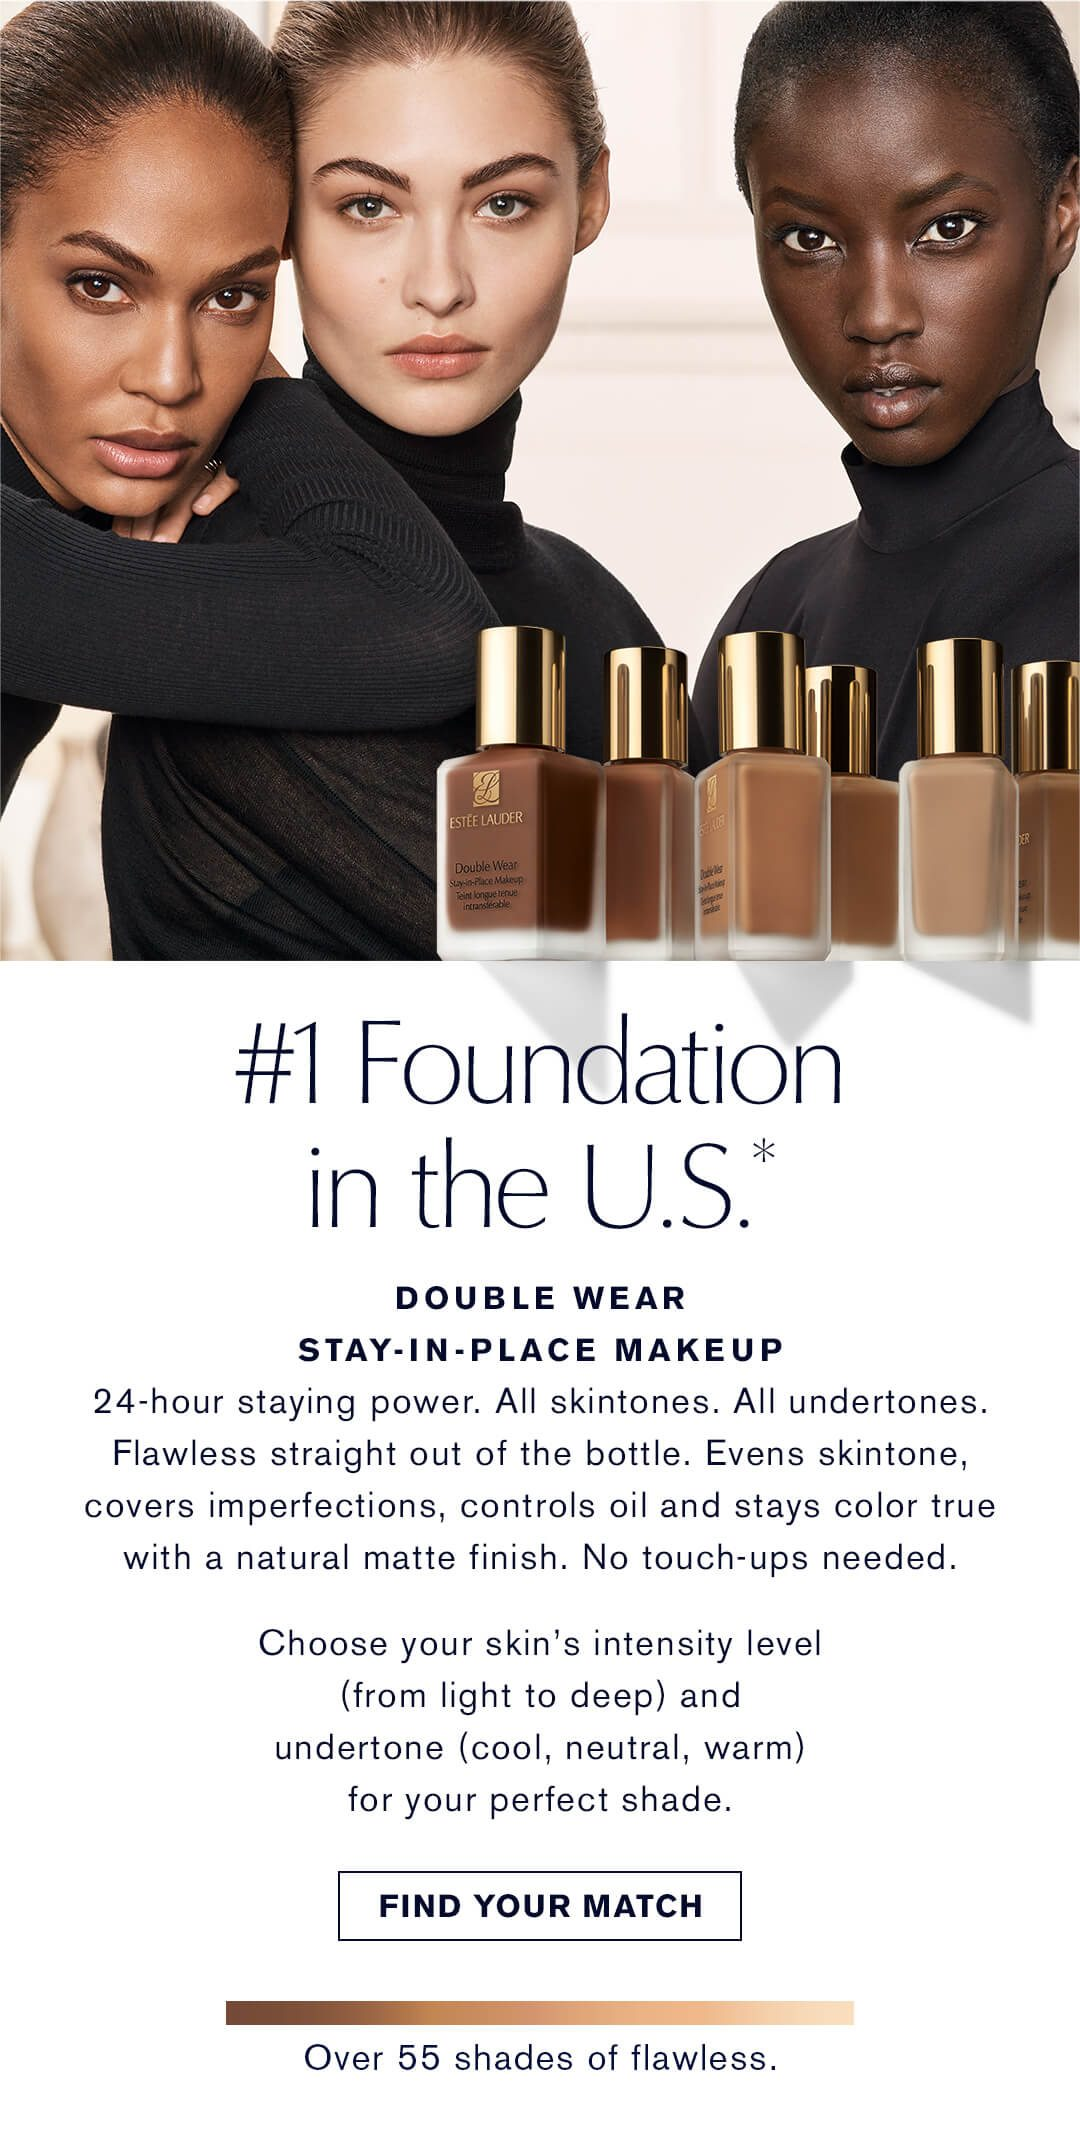 #1 Foundation in the U.S. | Double Wear Stay-In-Place Makeup